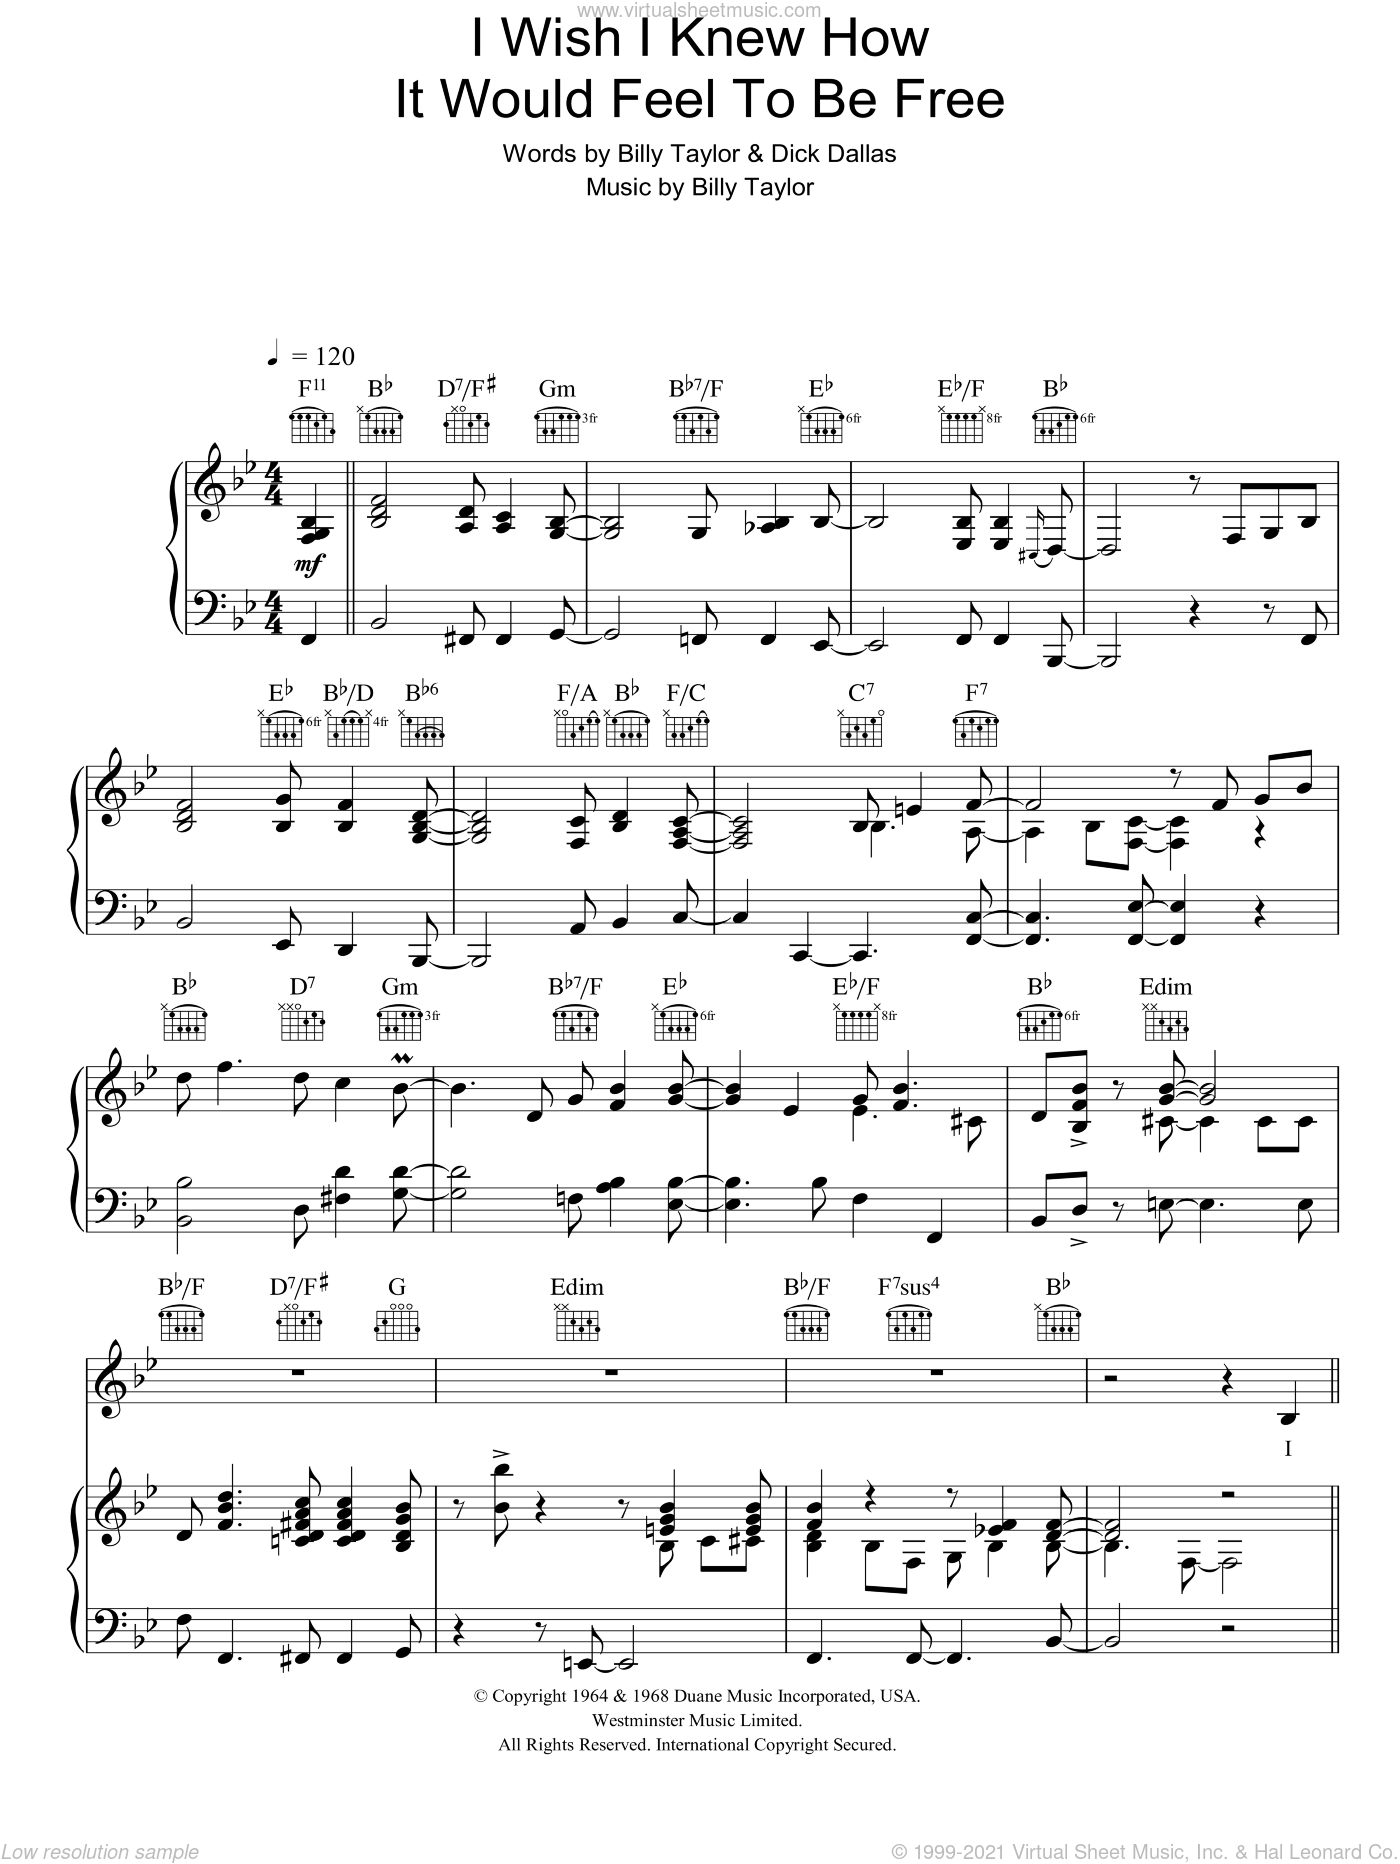 I Wish I Knew How It Would Feel To Be Free sheet music for voice, piano or guitar by Nina Simone, Billy Taylor and Dick Dallas, intermediate skill level